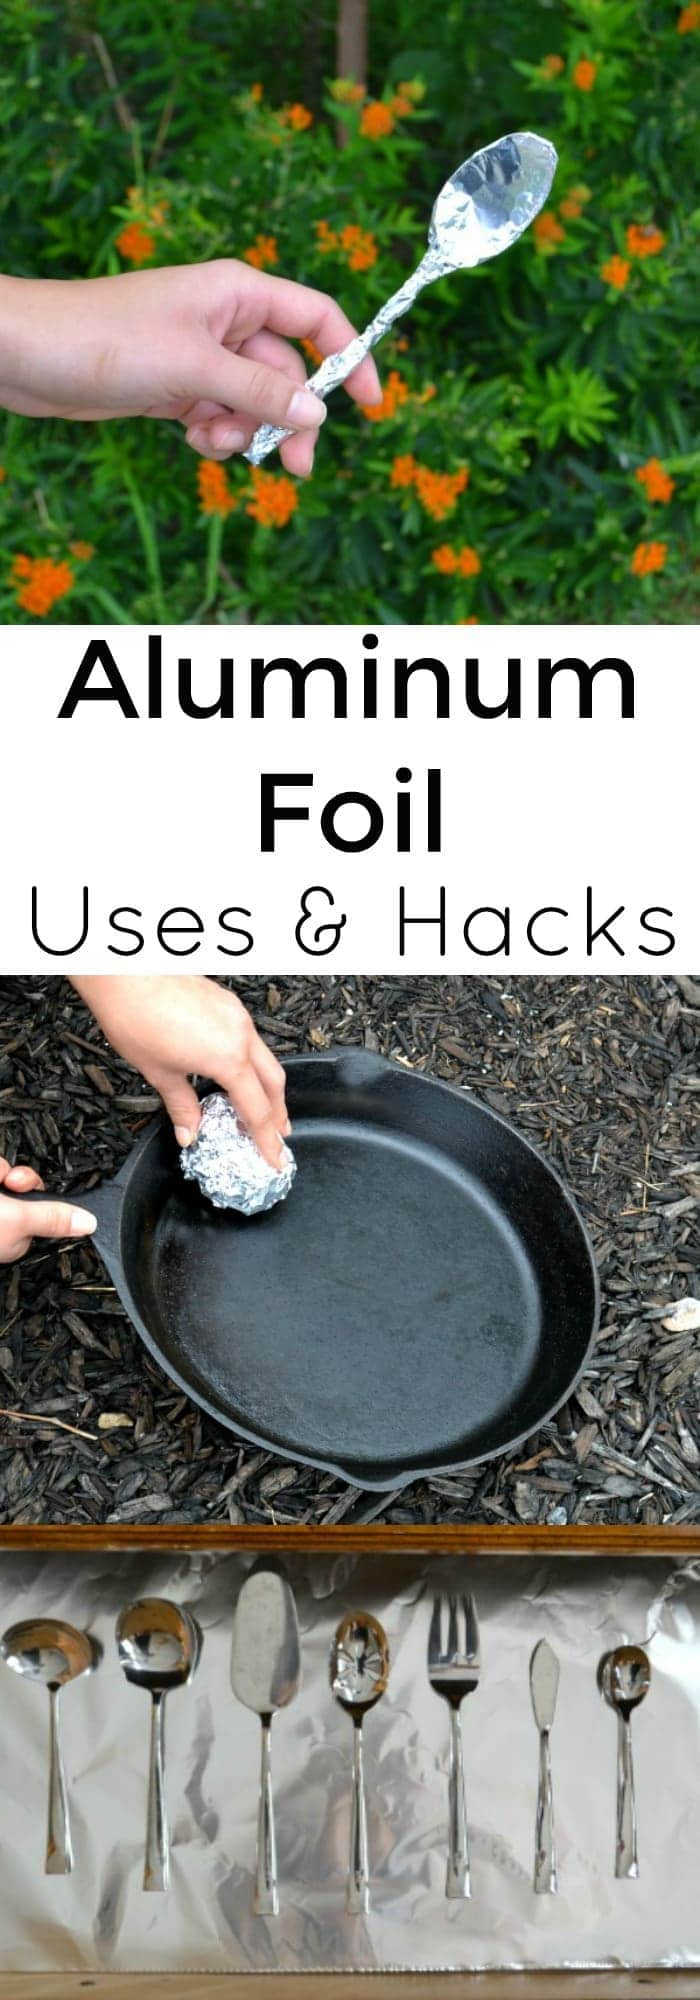 Did you know that you can use aluminum foil for many different things? Here's a list of aluminum foil uses and life hacks that you might not know. #aluminumfoil #lifehacks #householdtips #WhoKnewTip via @wondermomwannab